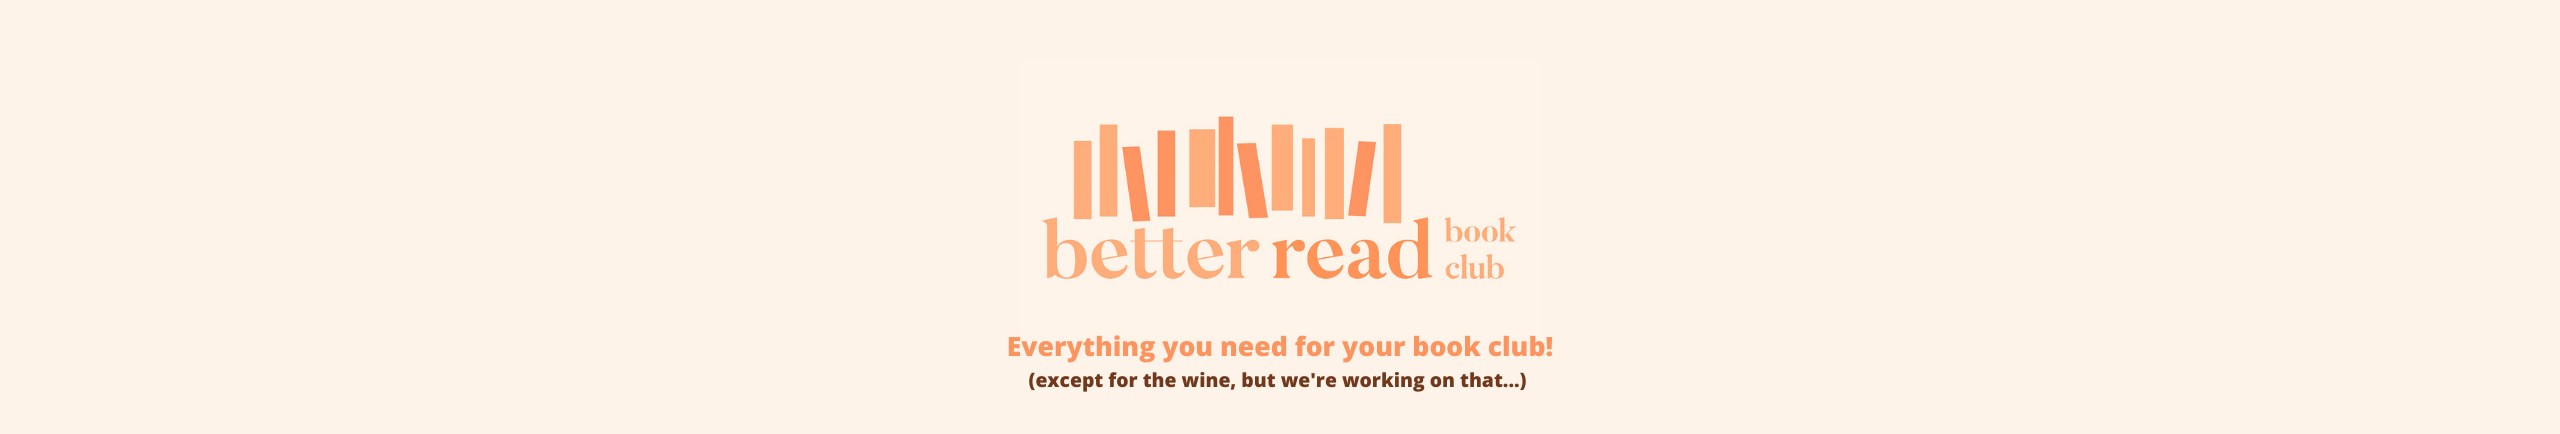 Welcome to the Better Read Book Club!